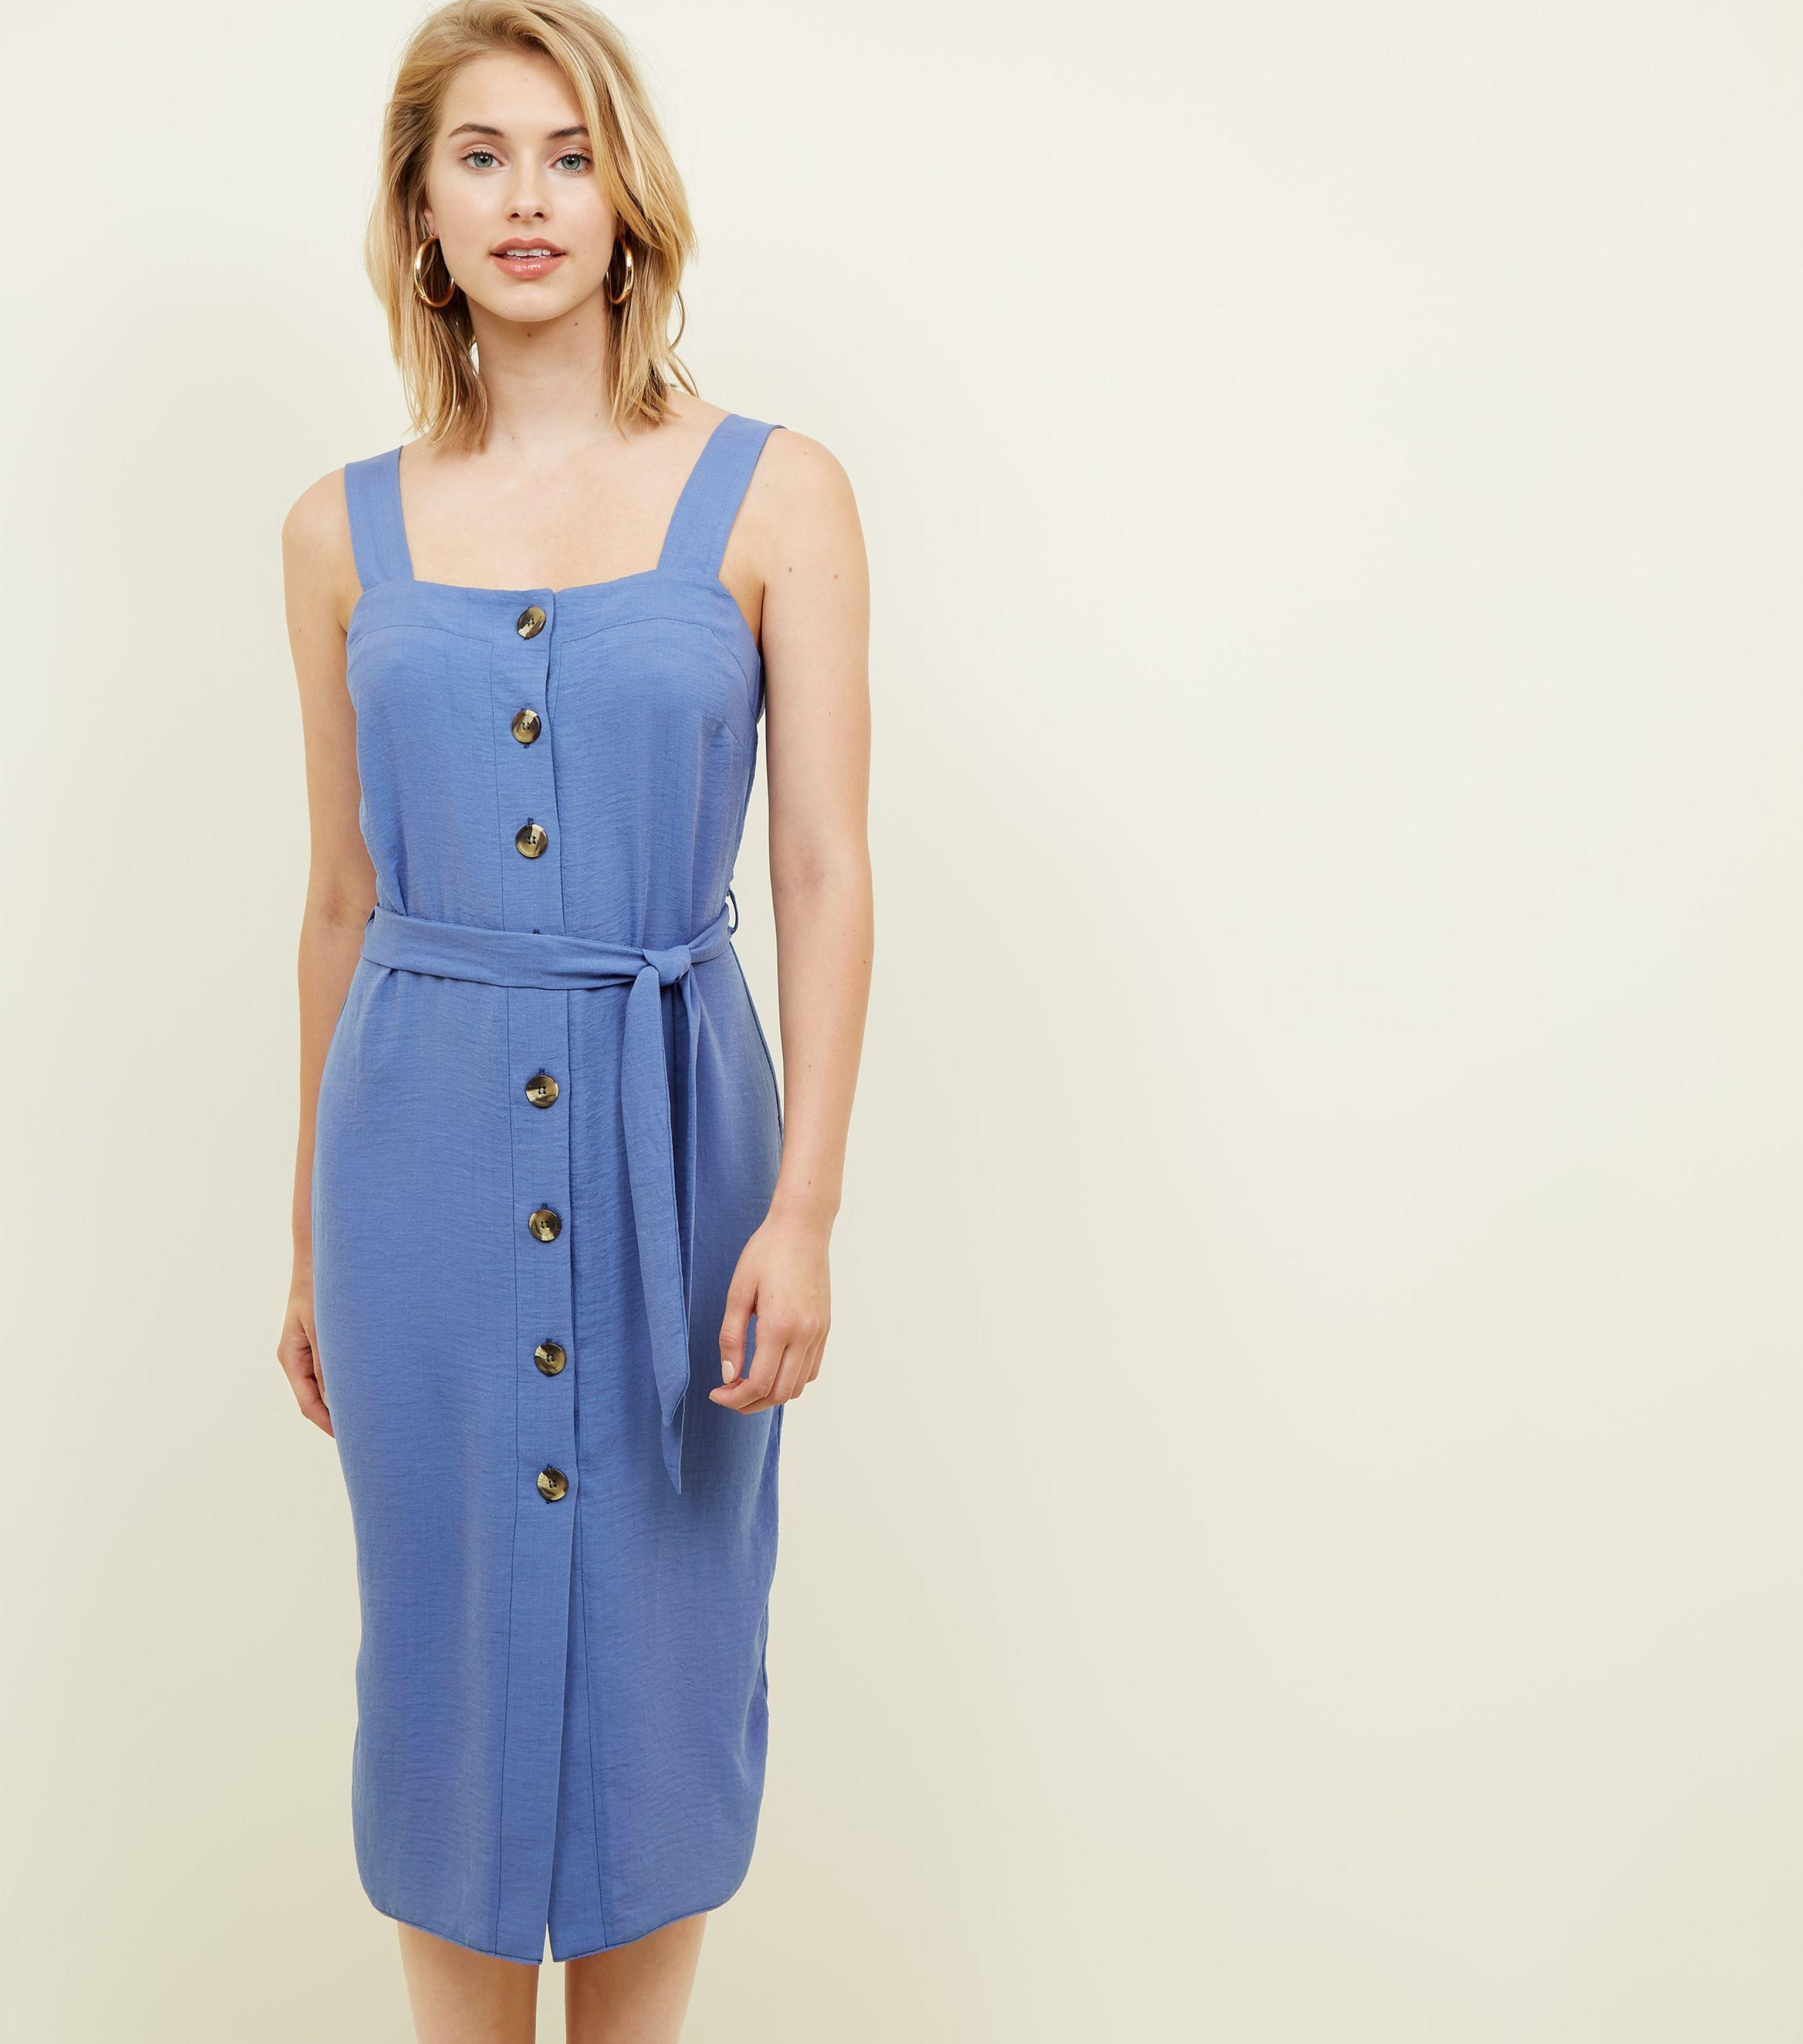 9c11e2e7c4b New Look Bright Blue Button Up Belted Linen-look Midi Dress in Blue ...